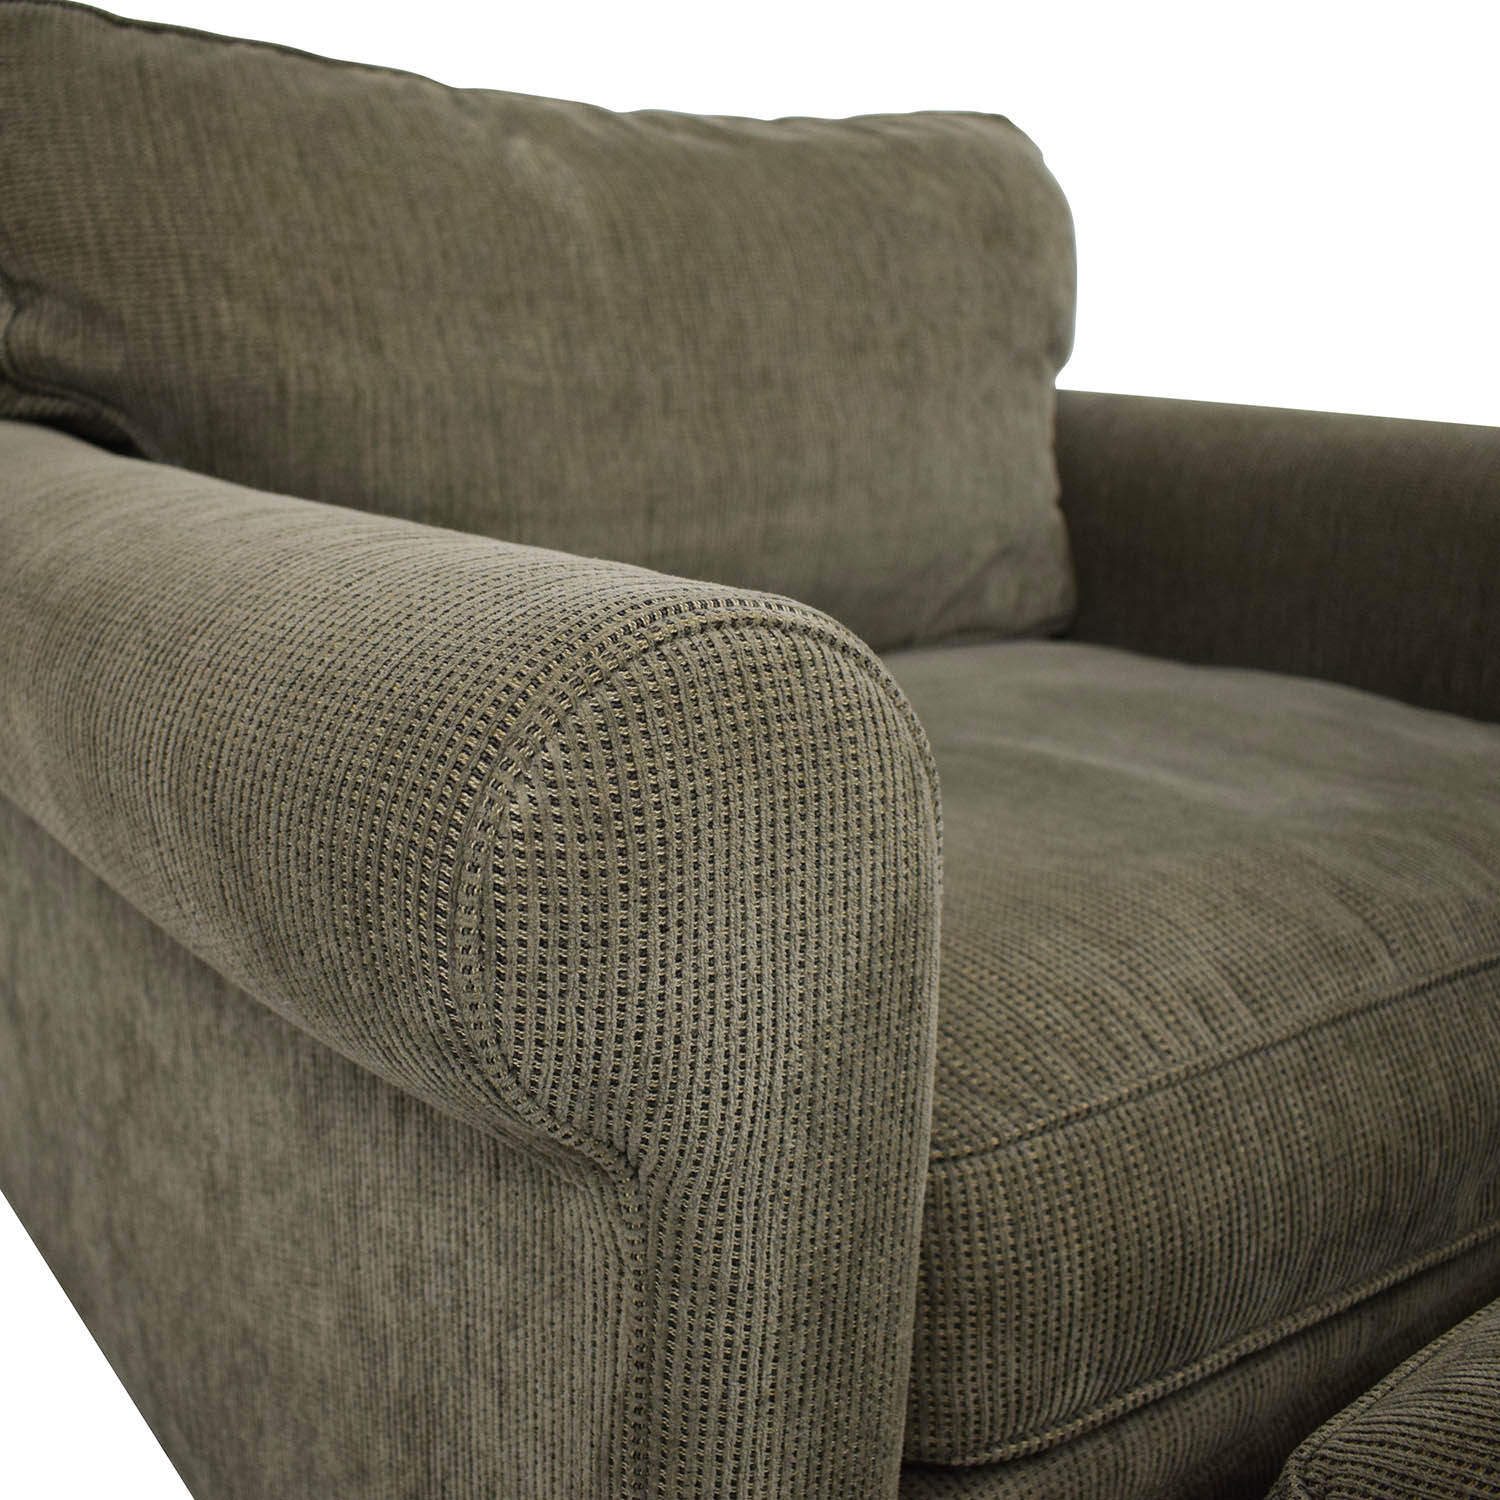 Crate & Barrel Crate & Barrel Upholstered Chair with Ottoman